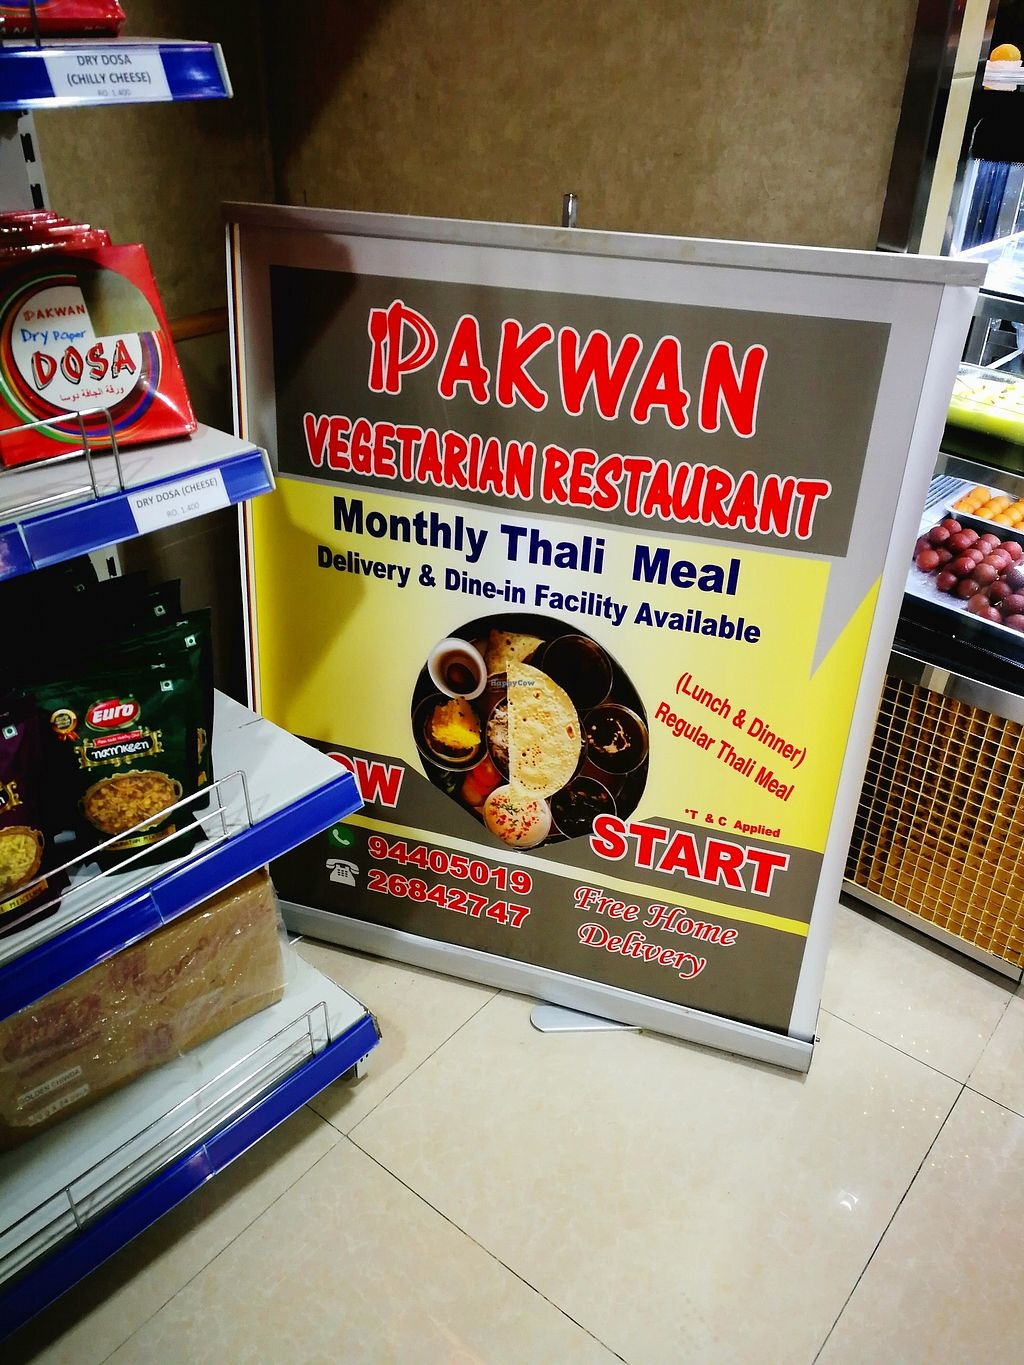 "Photo of Pakwan Vegetarian Restaurant - North  by <a href=""/members/profile/Gudrun"">Gudrun</a> <br/>Inside <br/> October 23, 2017  - <a href='/contact/abuse/image/102629/318078'>Report</a>"